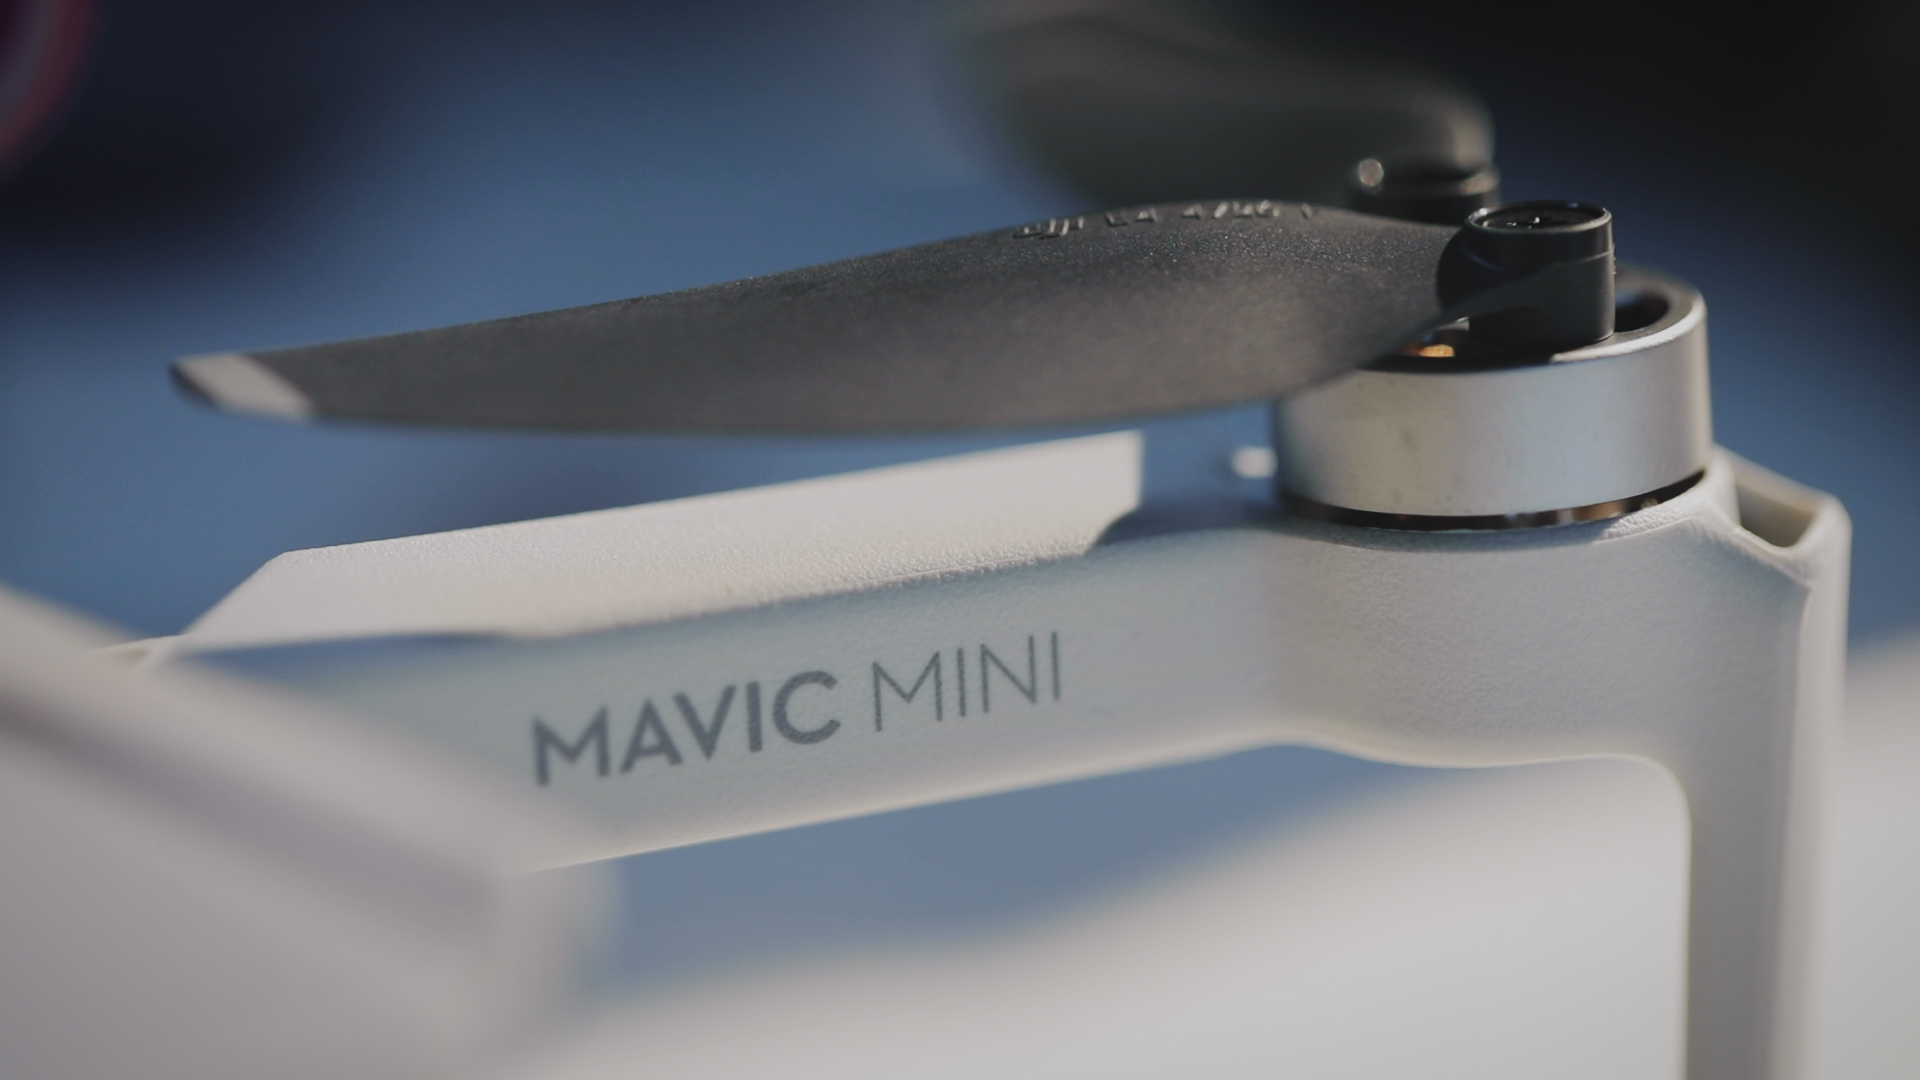 mavic mini 009